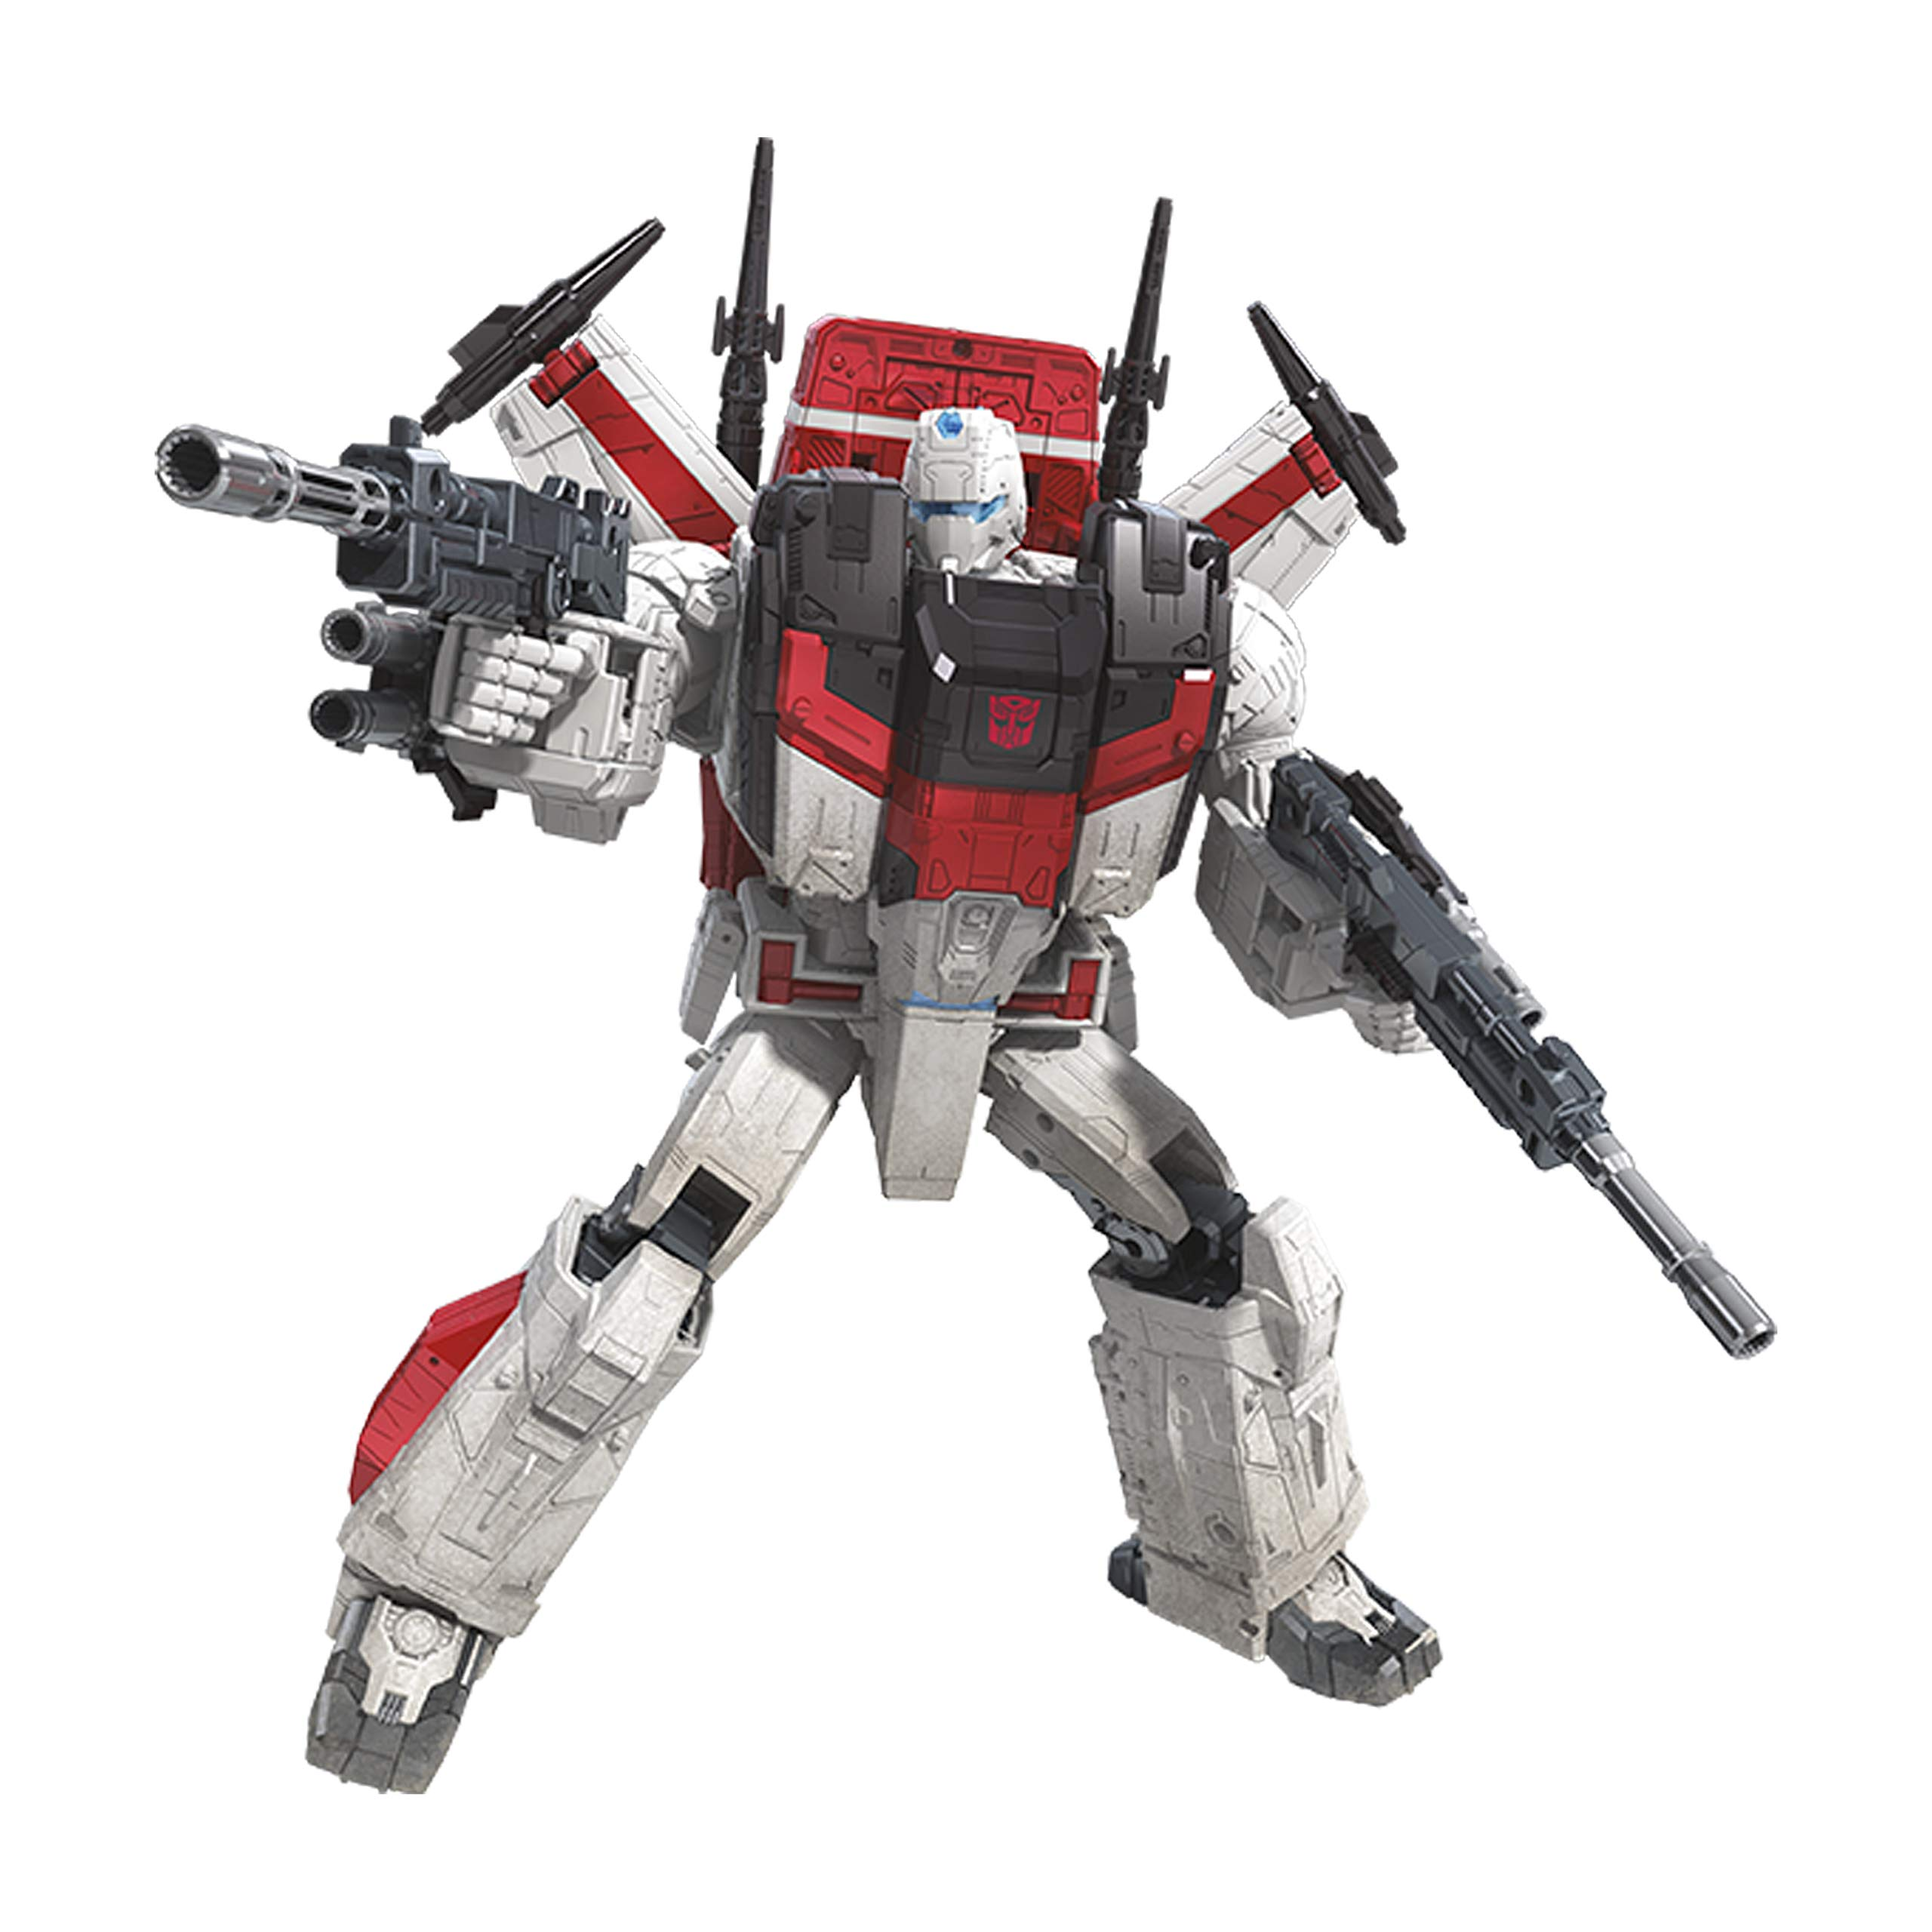 Transformers Toys Generations War for Cybertron Commander Wfc-S28 Jetfire Action Figure - Siege Chapter - Adults & Kids Ages 8 & Up, 11'' by Transformers (Image #2)